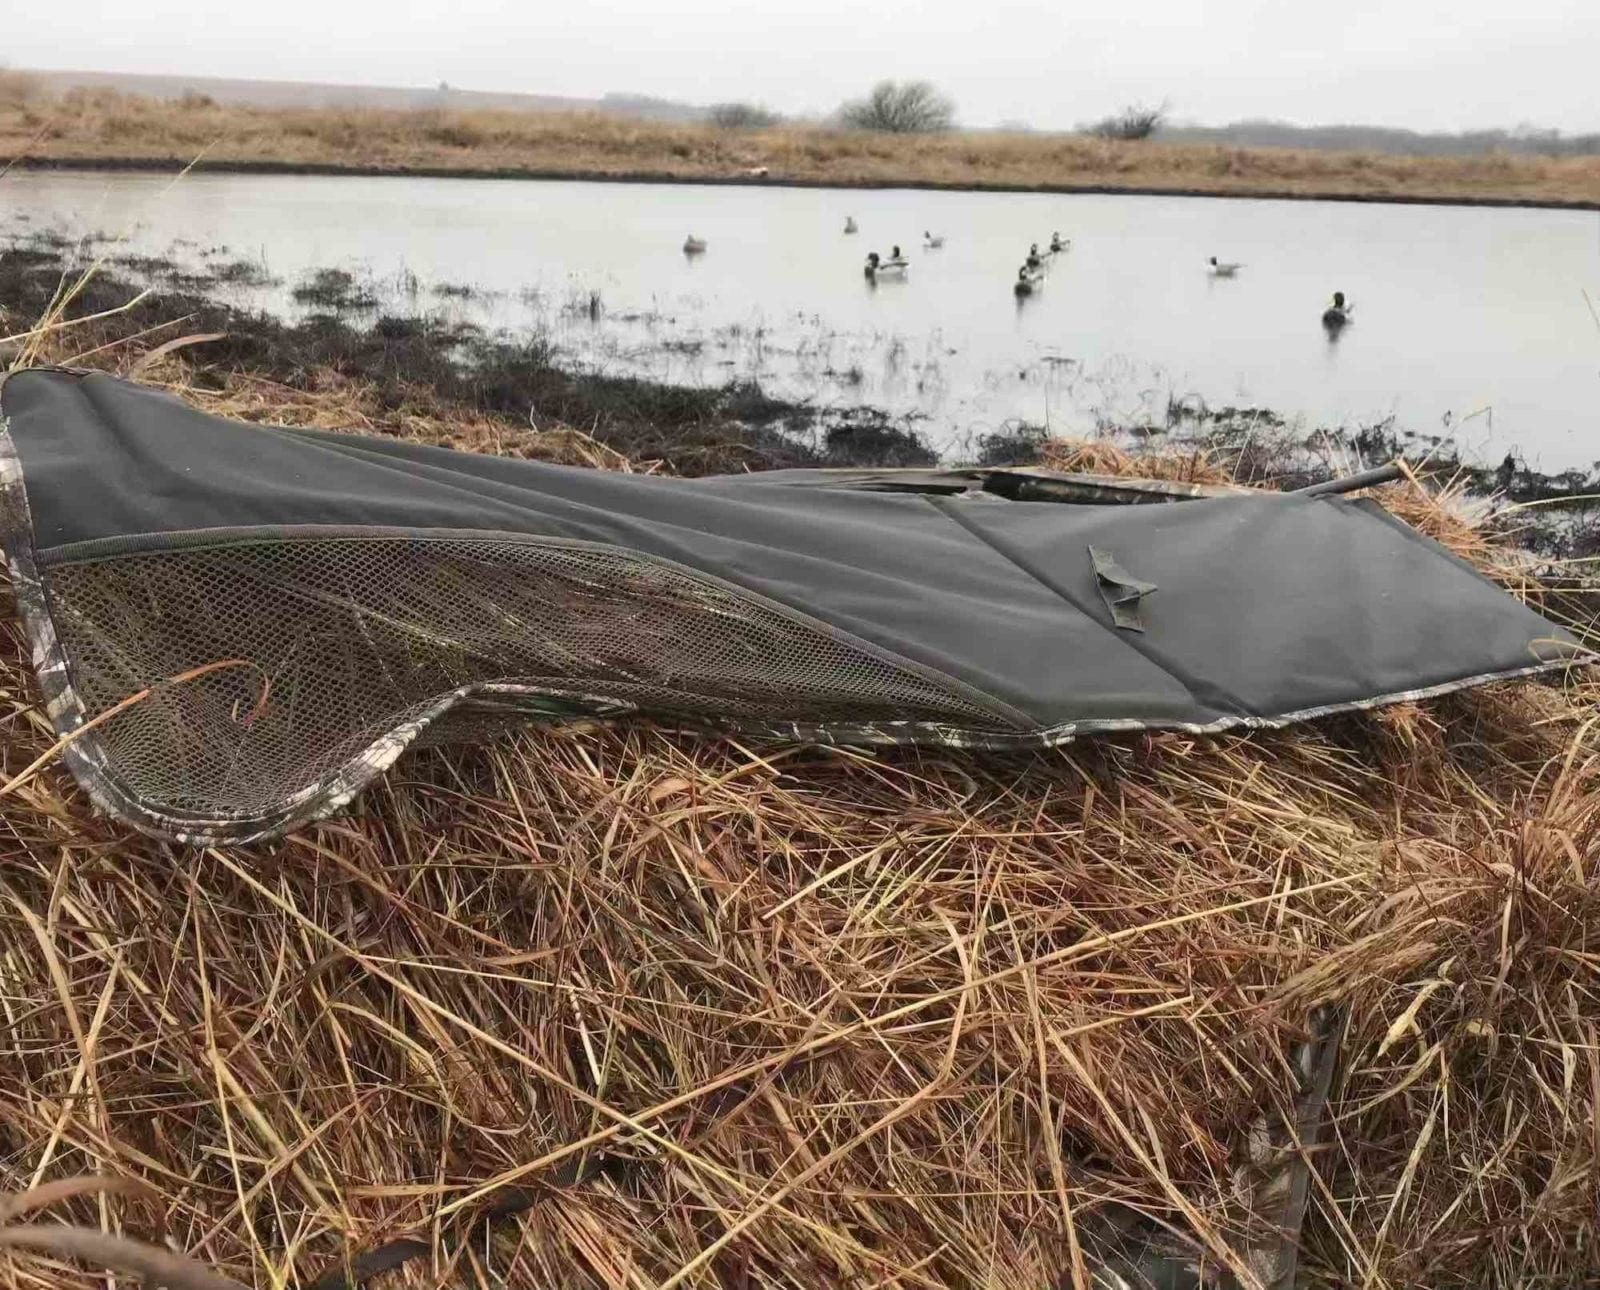 A layout blind for duck hunting next to decoys on a pond